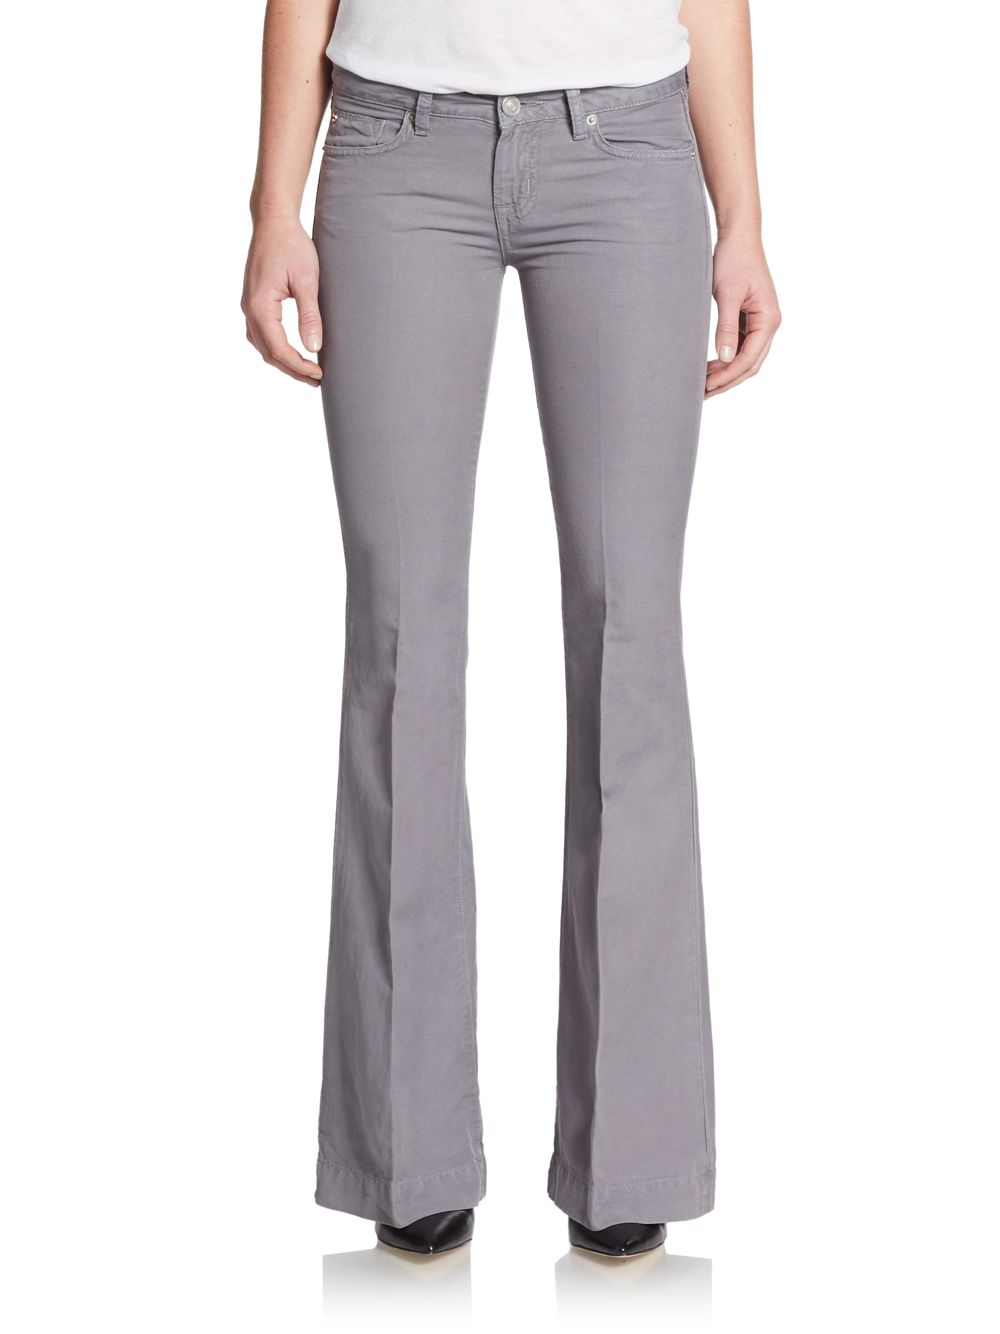 Hudson jeans Ferris Linen & Cotton Blend Flare Jeans in Gray | Lyst